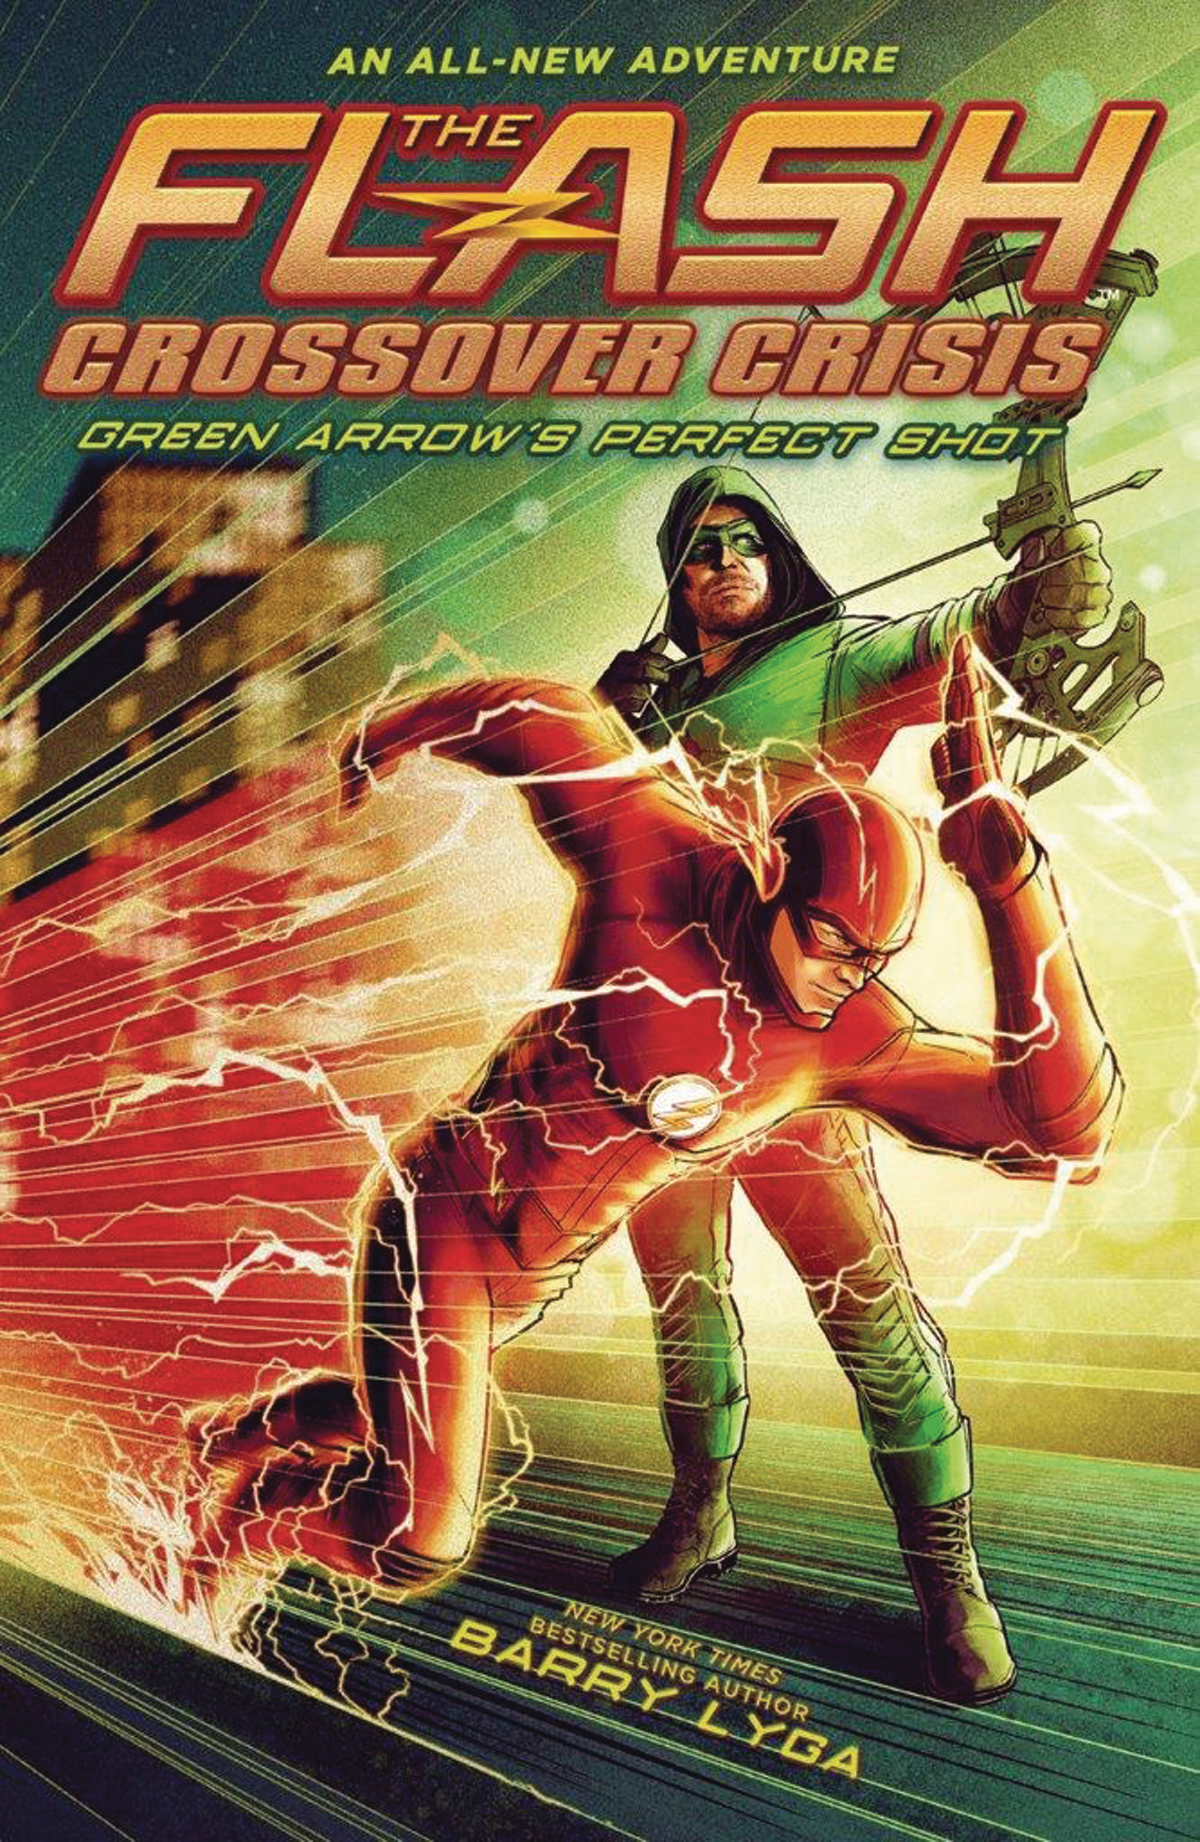 FLASH CROSSOVER CRISIS HC VOL 01 GREEN ARROWS PERFECT SHOT (